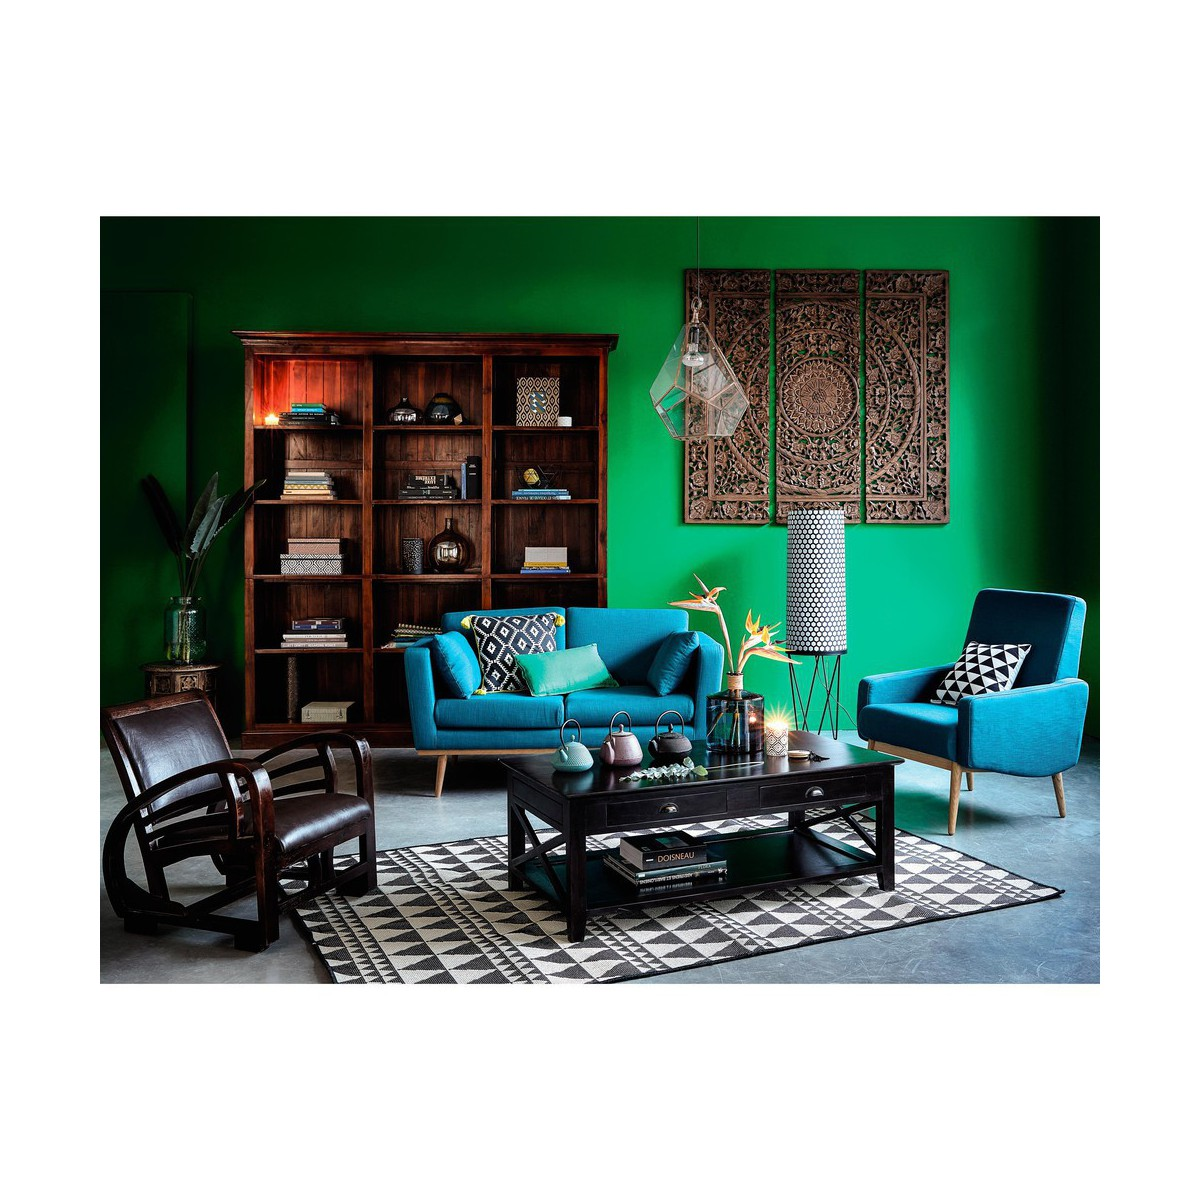 canap bleu ptrole gallery of acheter canape deux places convertible with canap bleu ptrole. Black Bedroom Furniture Sets. Home Design Ideas